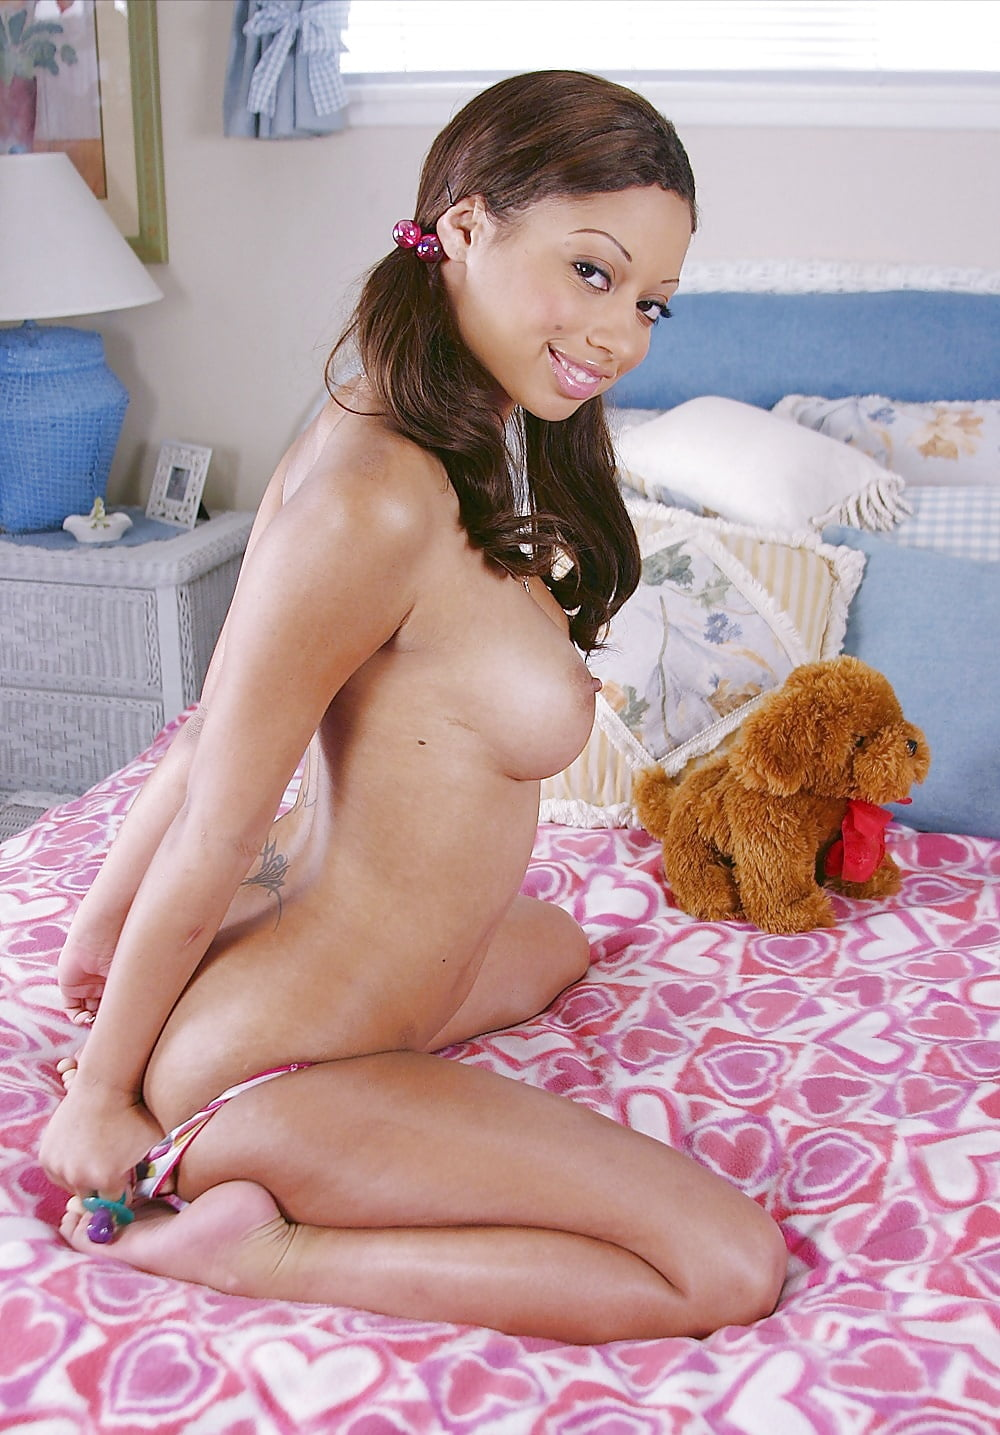 girl-squirt-barely-legal-teen-girl